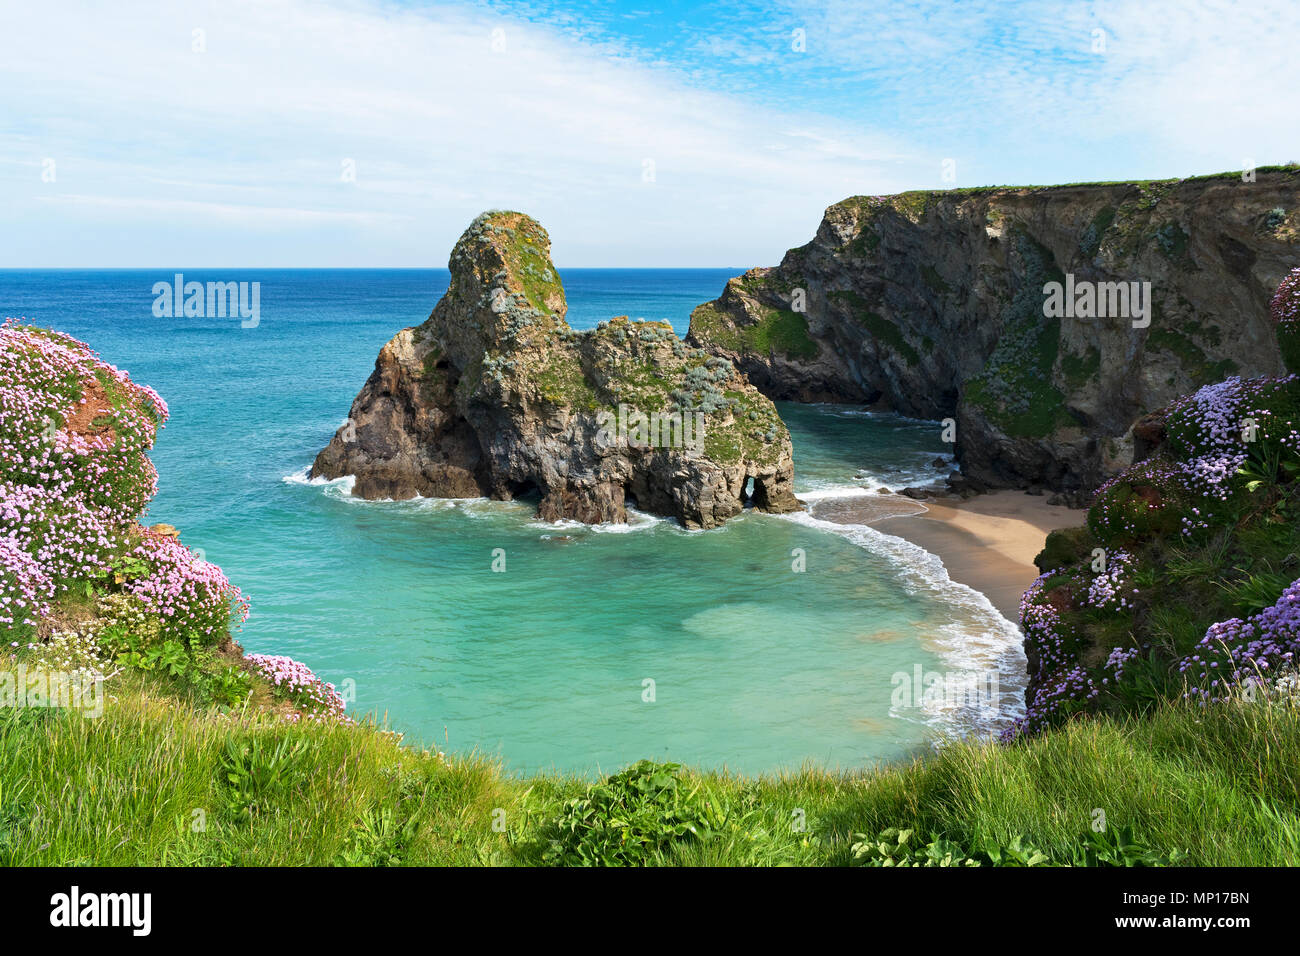 whipsiderry beach, newquay, cornwall, england, britain, uk. - Stock Image